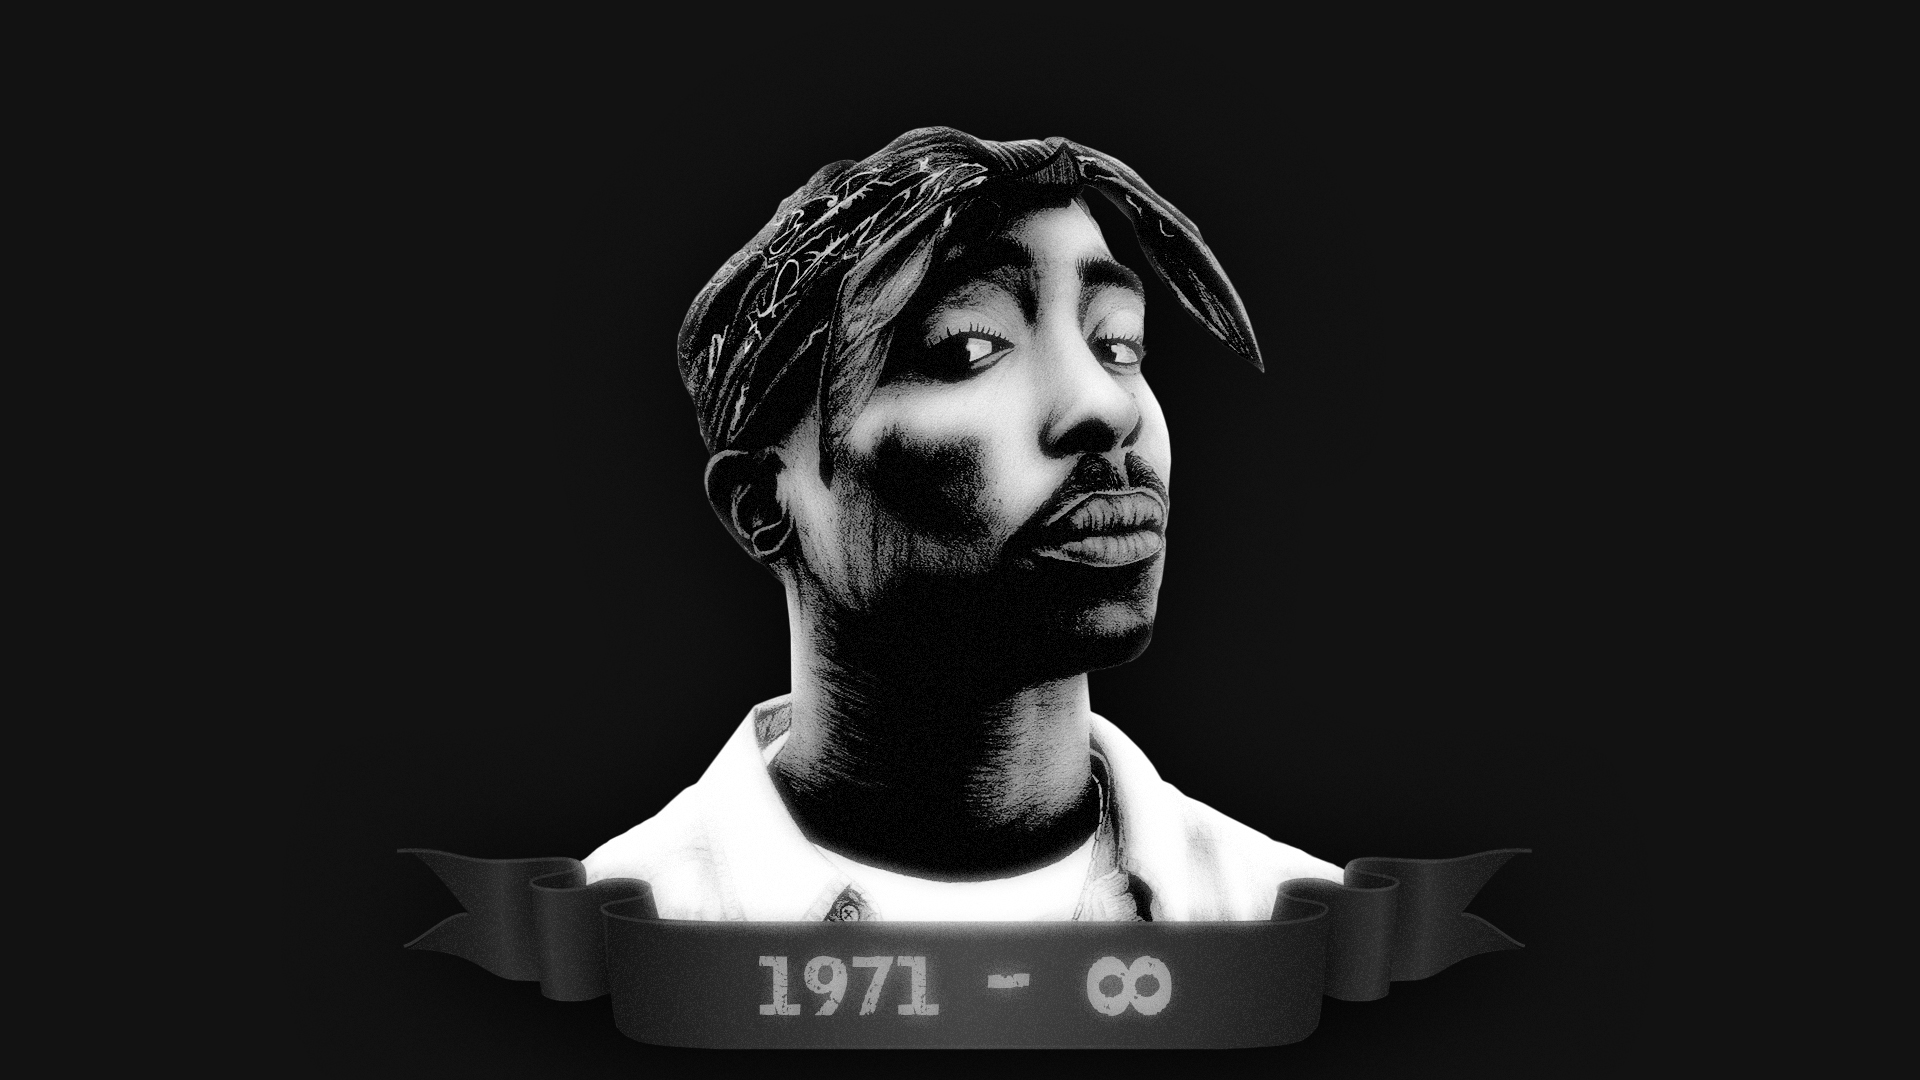 2pac Computer Wallpapers Desktop Backgrounds 1920x1080 1920x1080